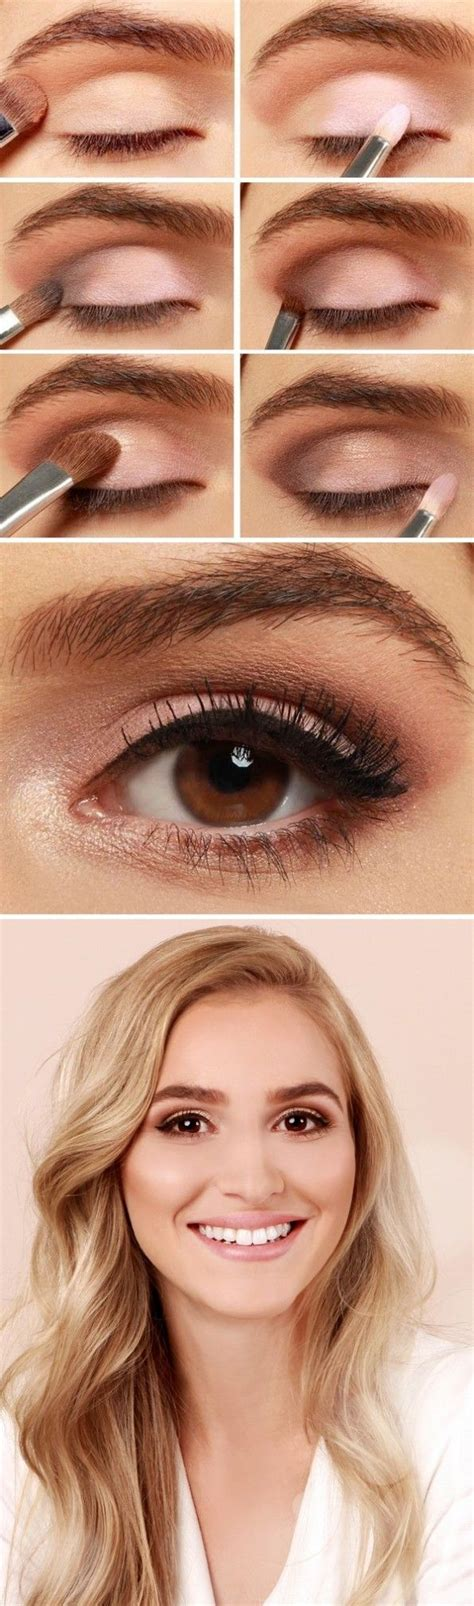 natural eye makeup tutorial for brown eyes 20 most popular makeup ideas for brown eyes in pinterest